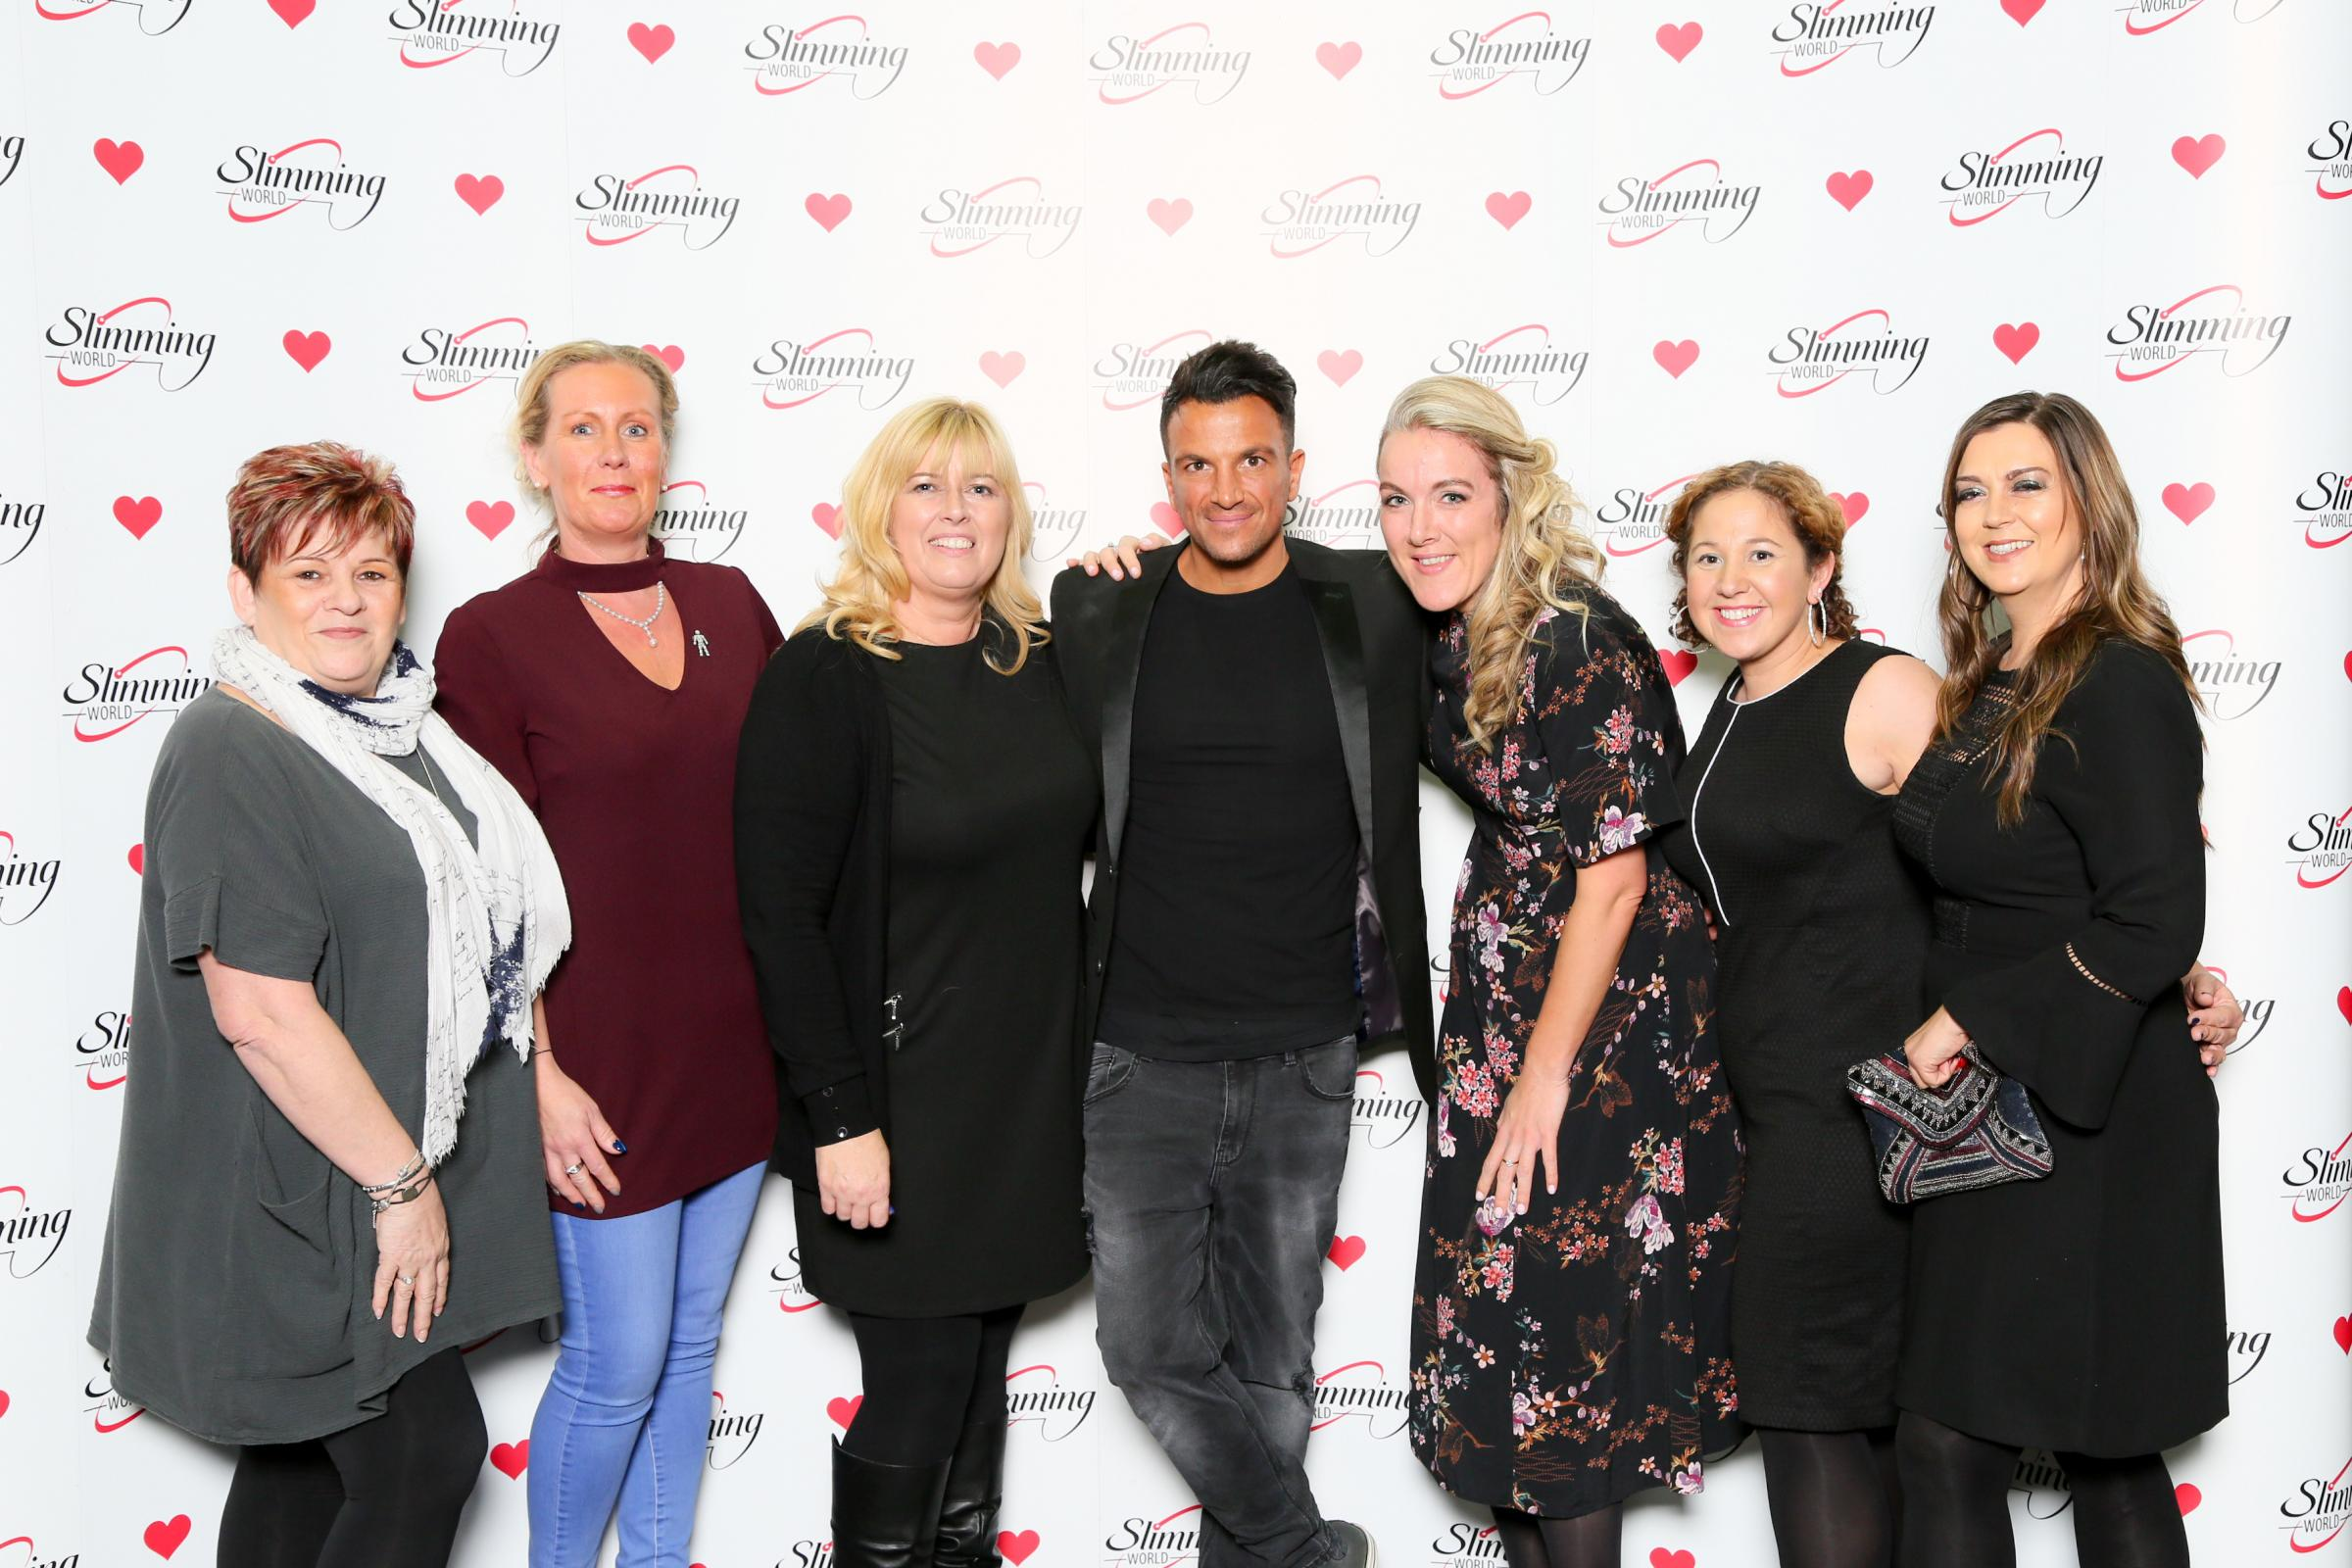 WINNERS: Slimming World Consultants meet singer and presenter Peter Andre: Elaine Lamb, Victoria Turner, Amanda Langcake, Melanie Preece, Emma Richardson, Rebecca Bousfield